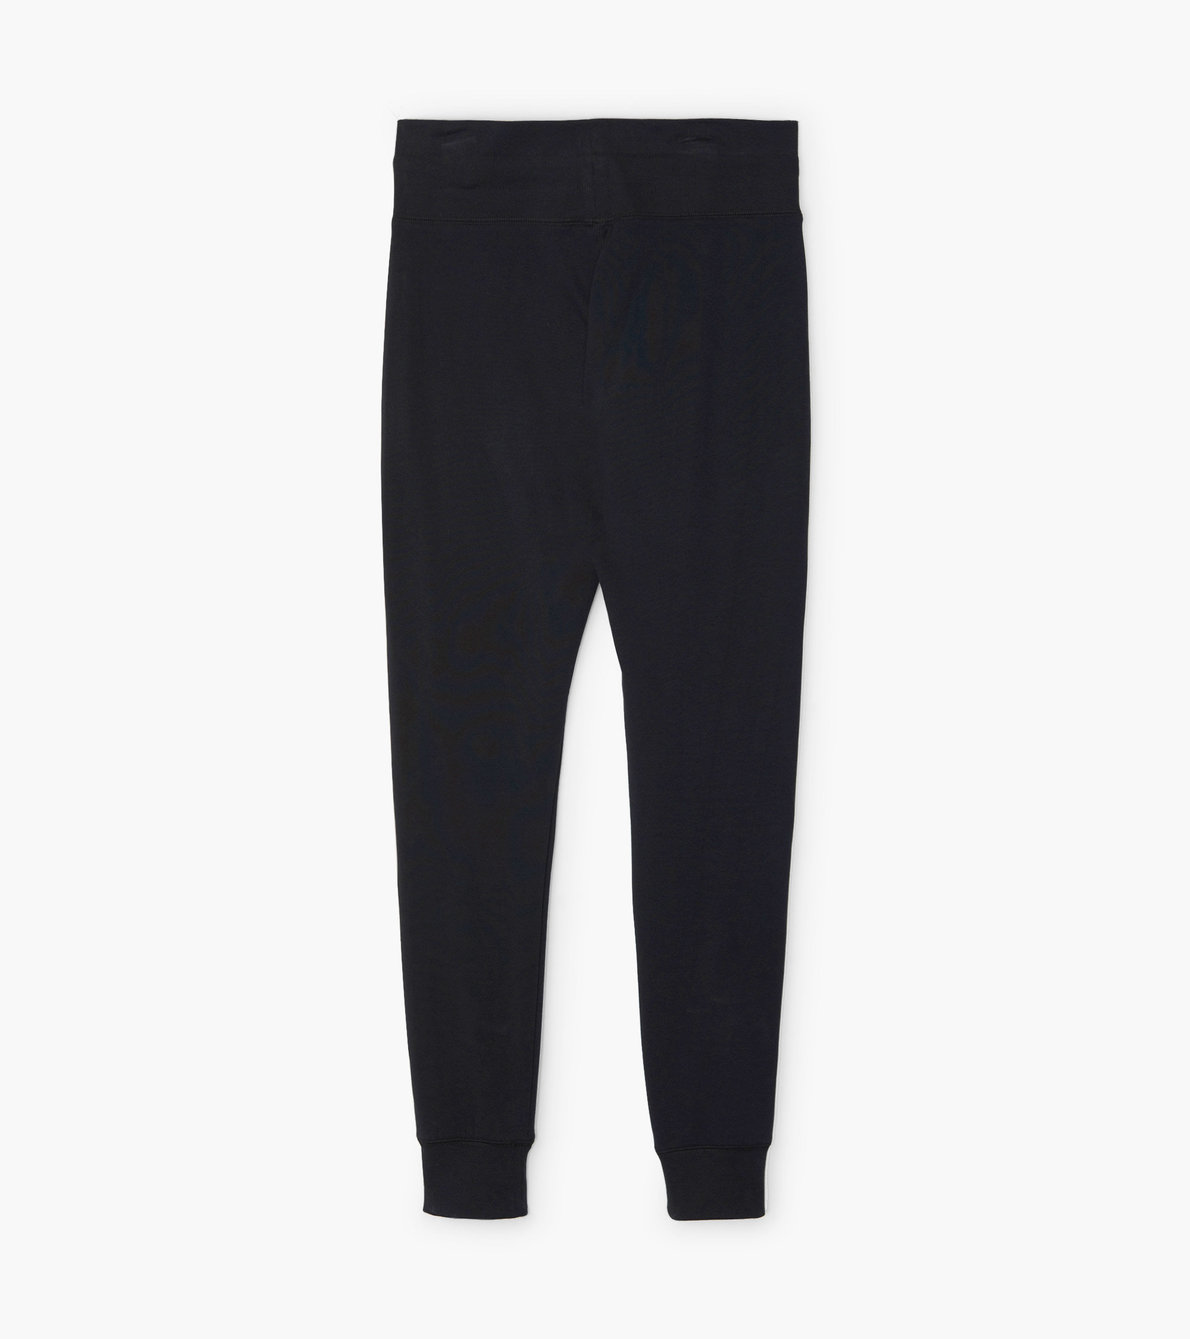 View larger image of Women's Heritage Slim Fit Joggers in Black